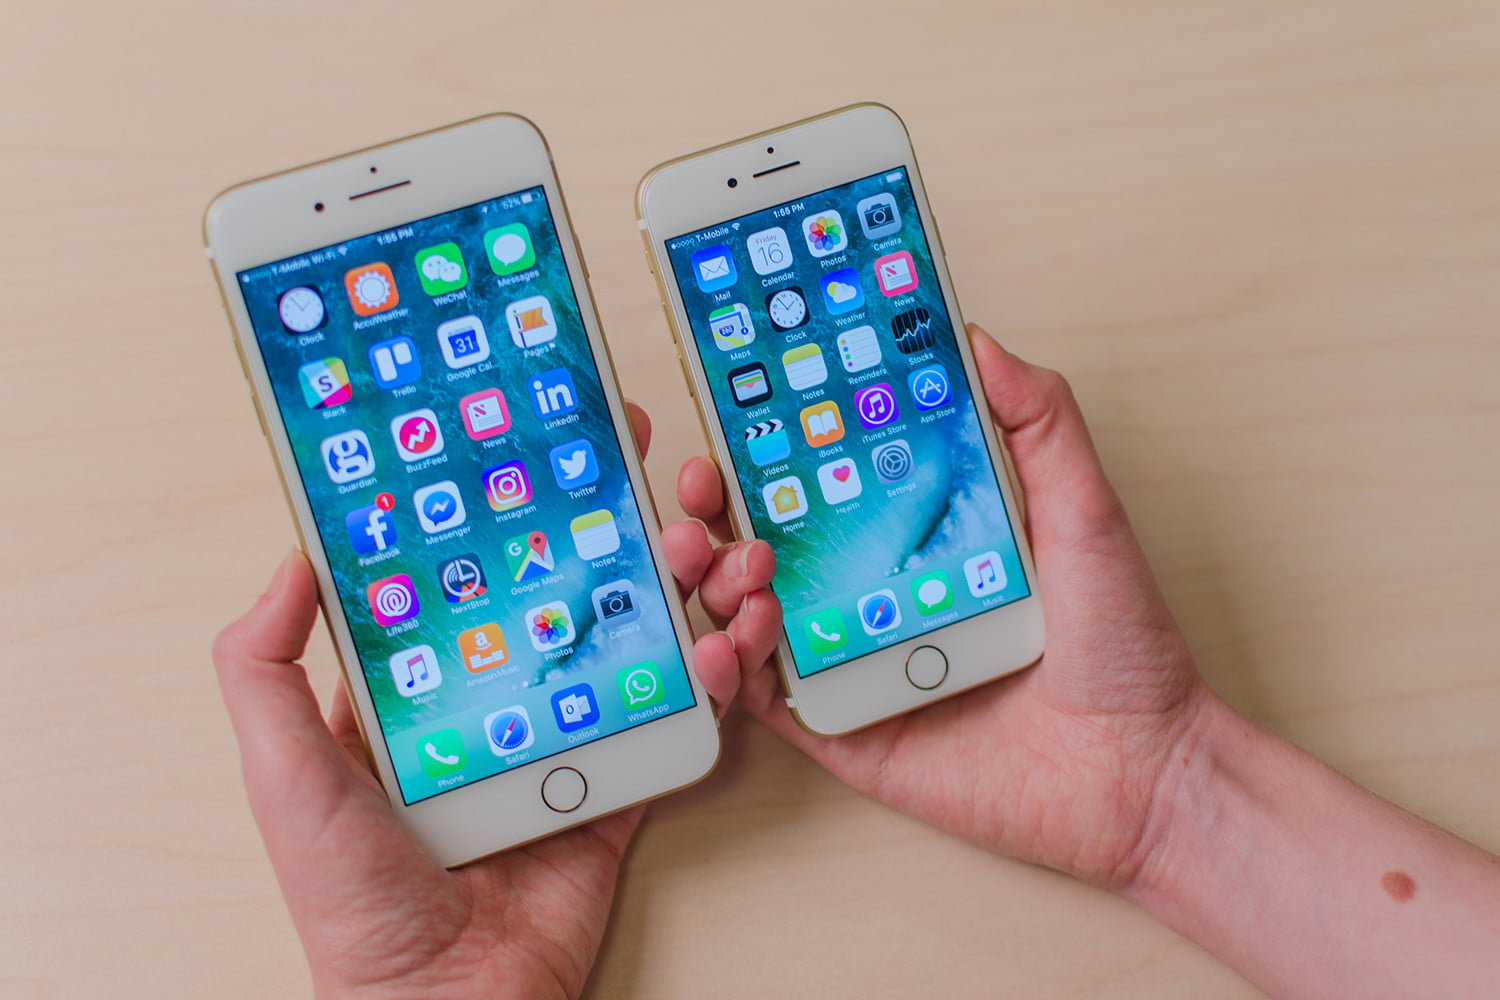 Apple iPhone 7 vs. iPhone 7 Plus | Smartphone Specs Comparison | Digital Trends